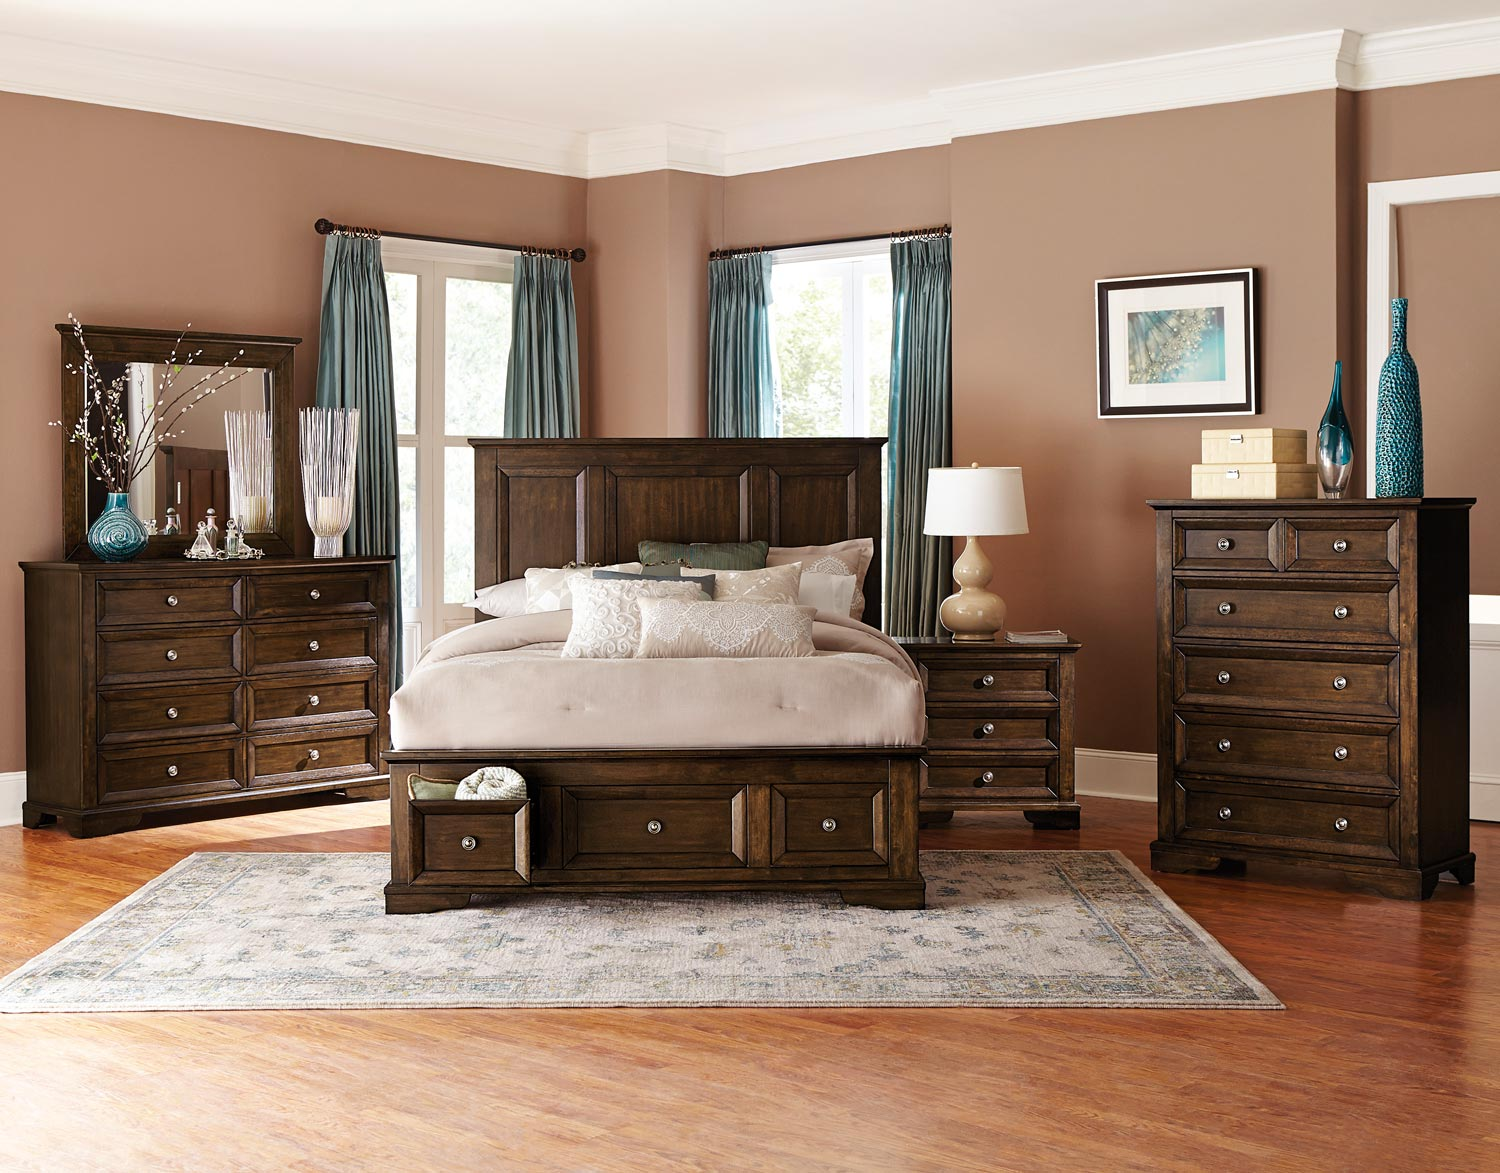 Homelegance Eunice Platform Storage Bedroom Set - Espresso